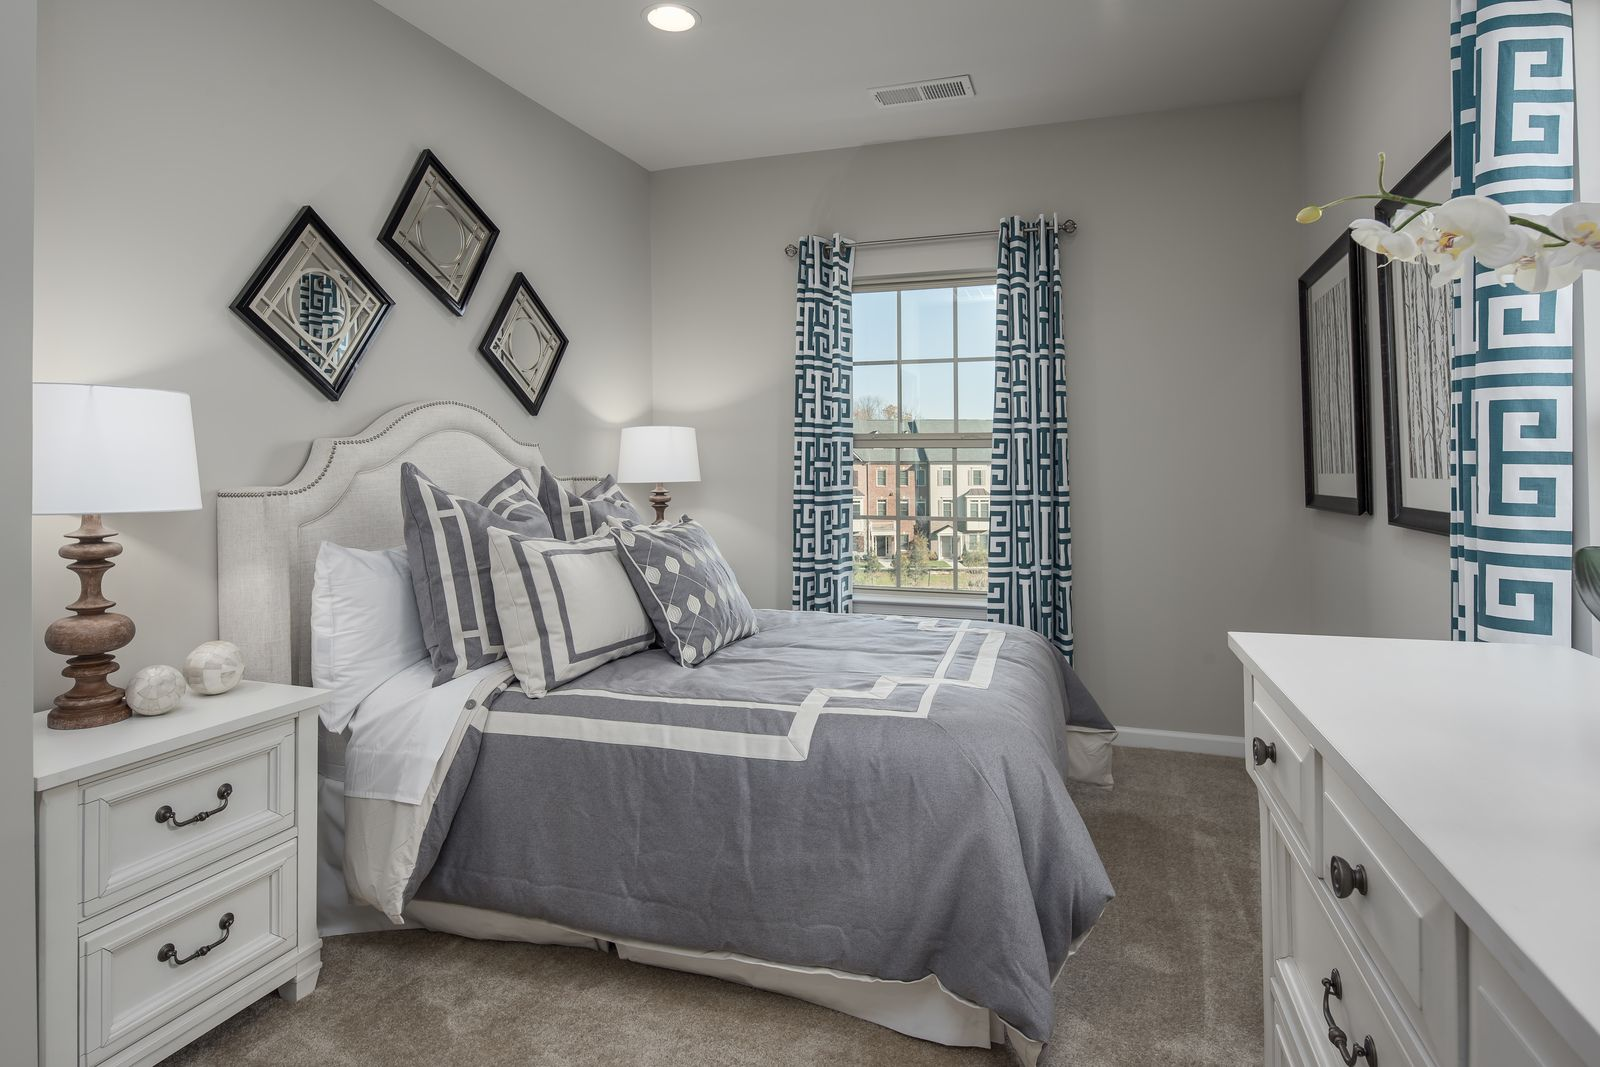 Bedroom featured in the Strauss By Ryan Homes in Washington, MD